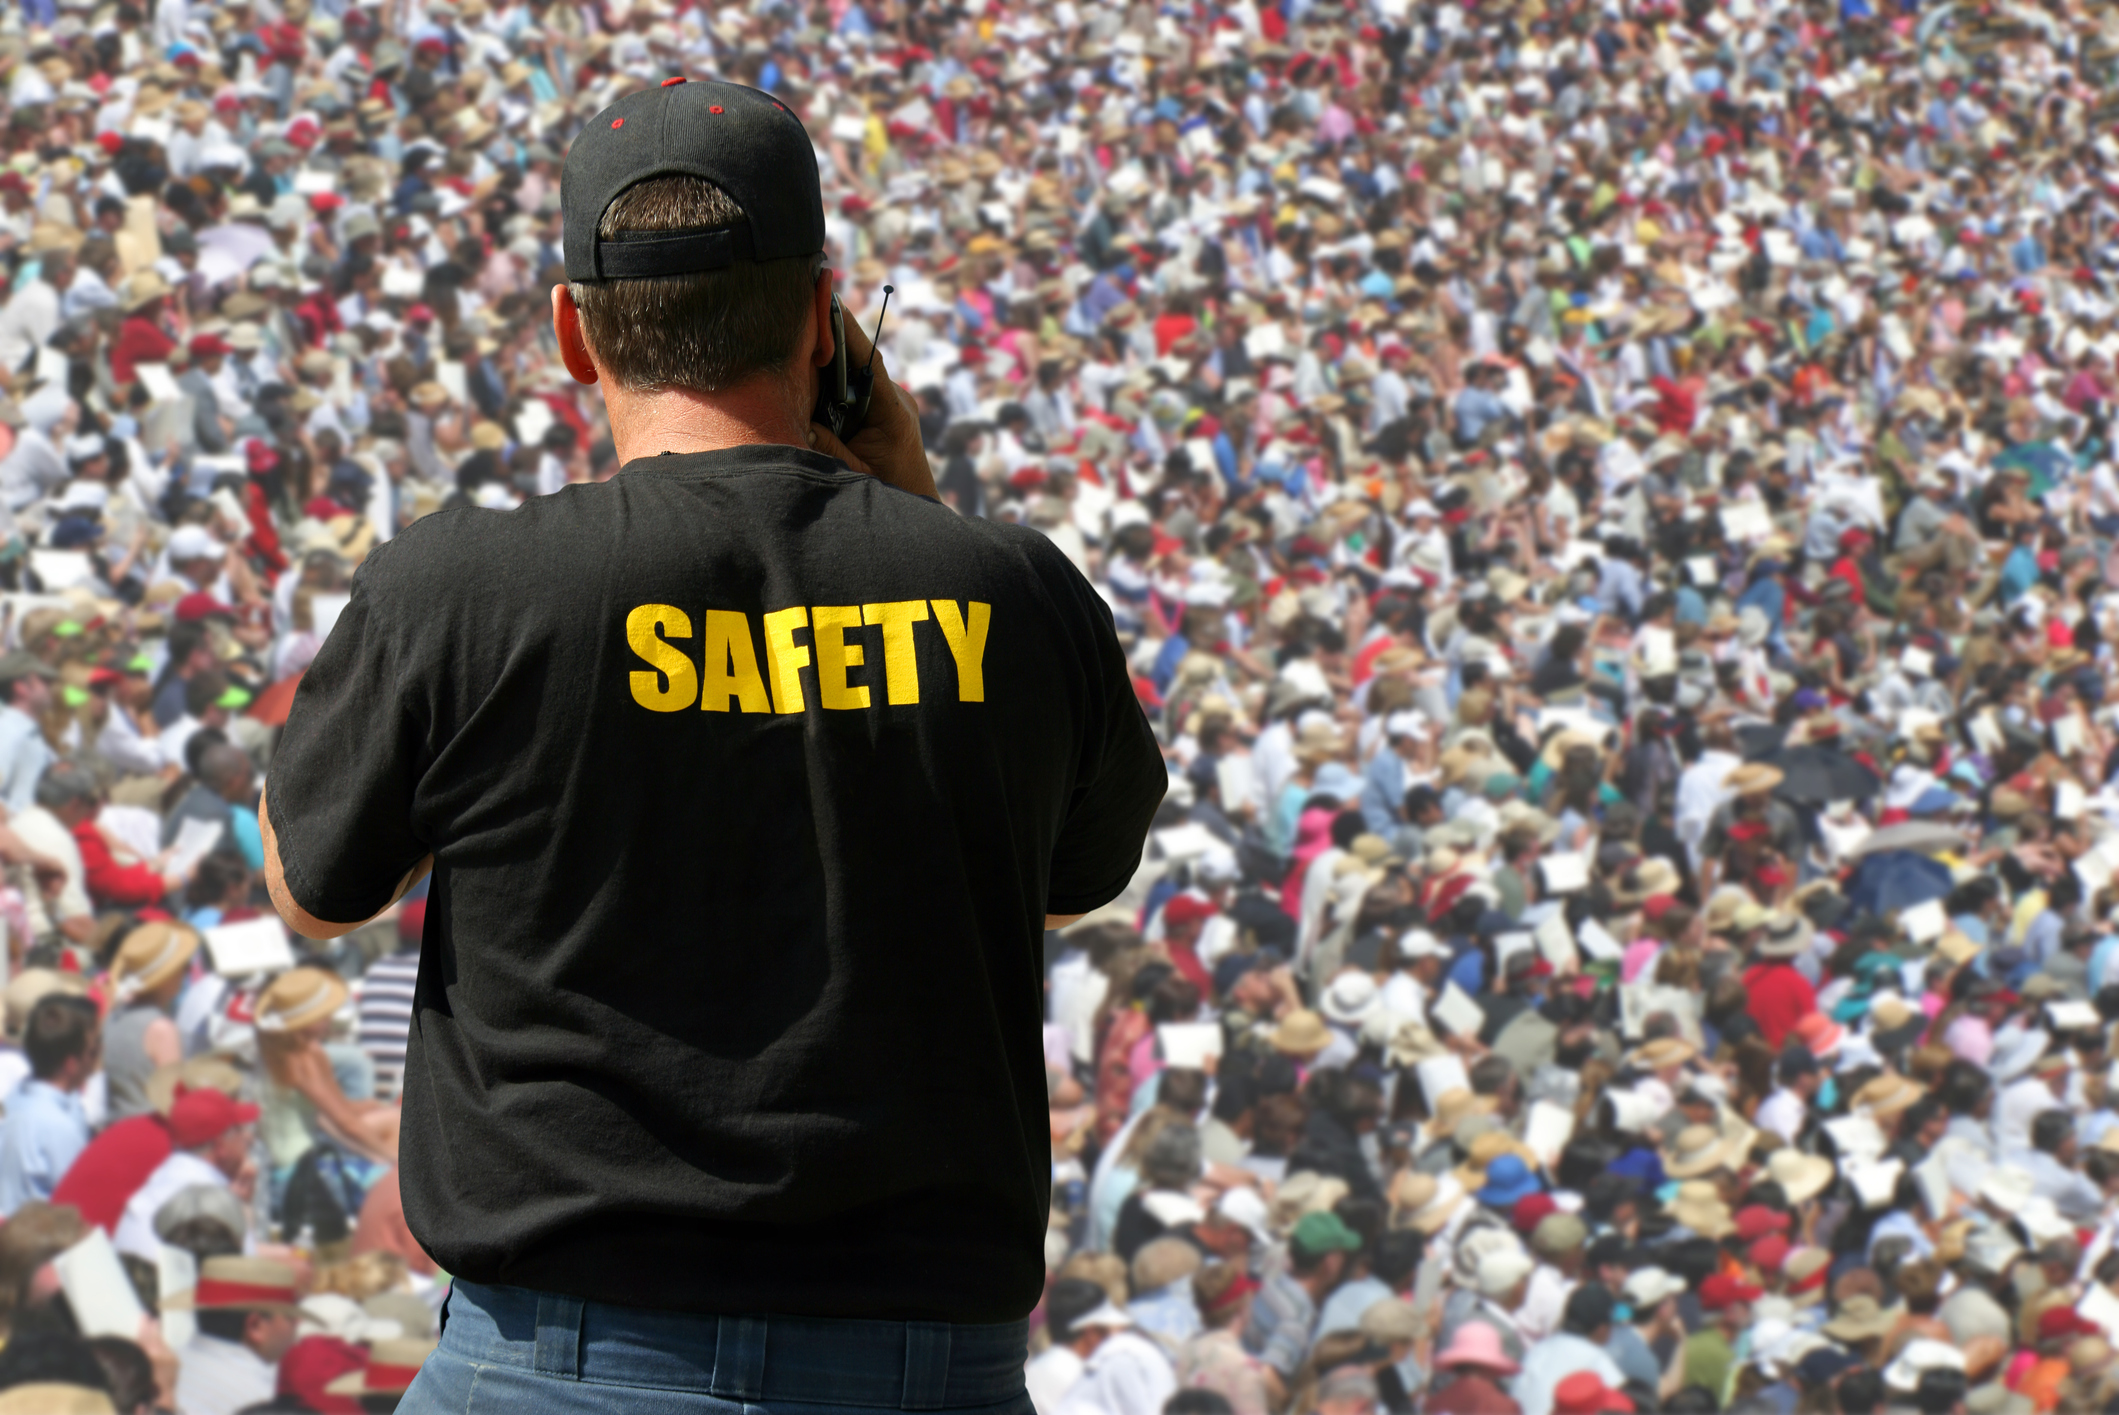 EVENT SECURITY - Do you need security for a large sporting event, speaker, or concert in Florida? All of out Florida licensed security guards that specialize in event security can help assist you to ensure that your event goes as planned. We provide security services in Jacksonville, Daytona, Orlando, Sarasota, Tallahassee, Tampa, and every other city in the State of Florida.